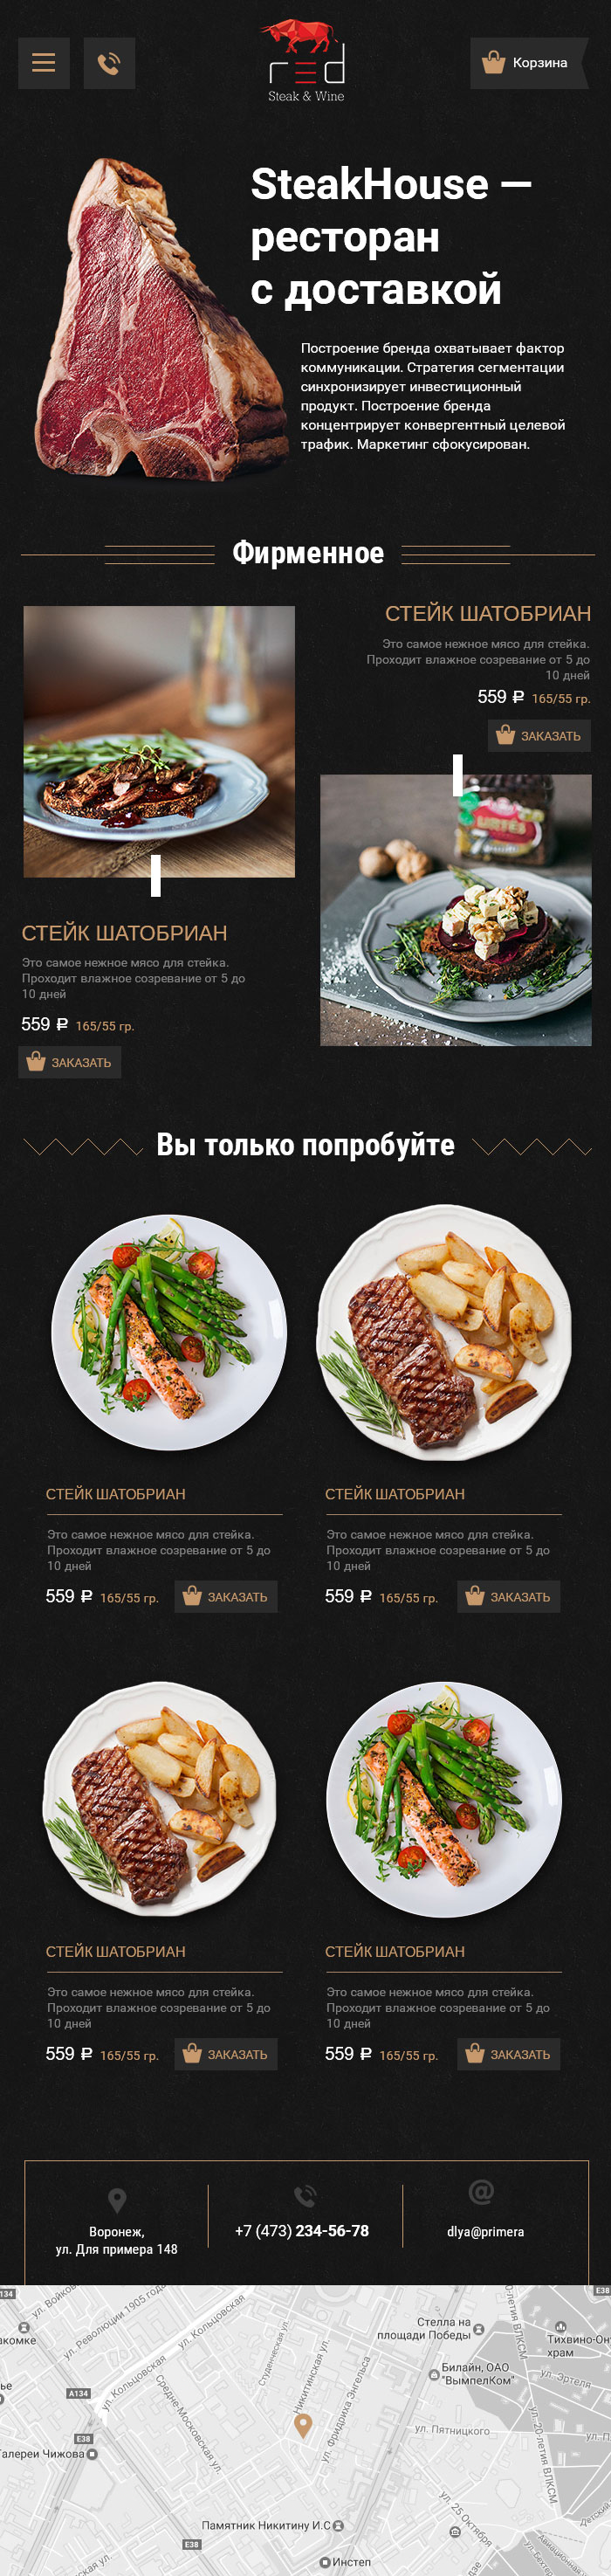 Стейк-хаус Red Steak & Wine 640 px